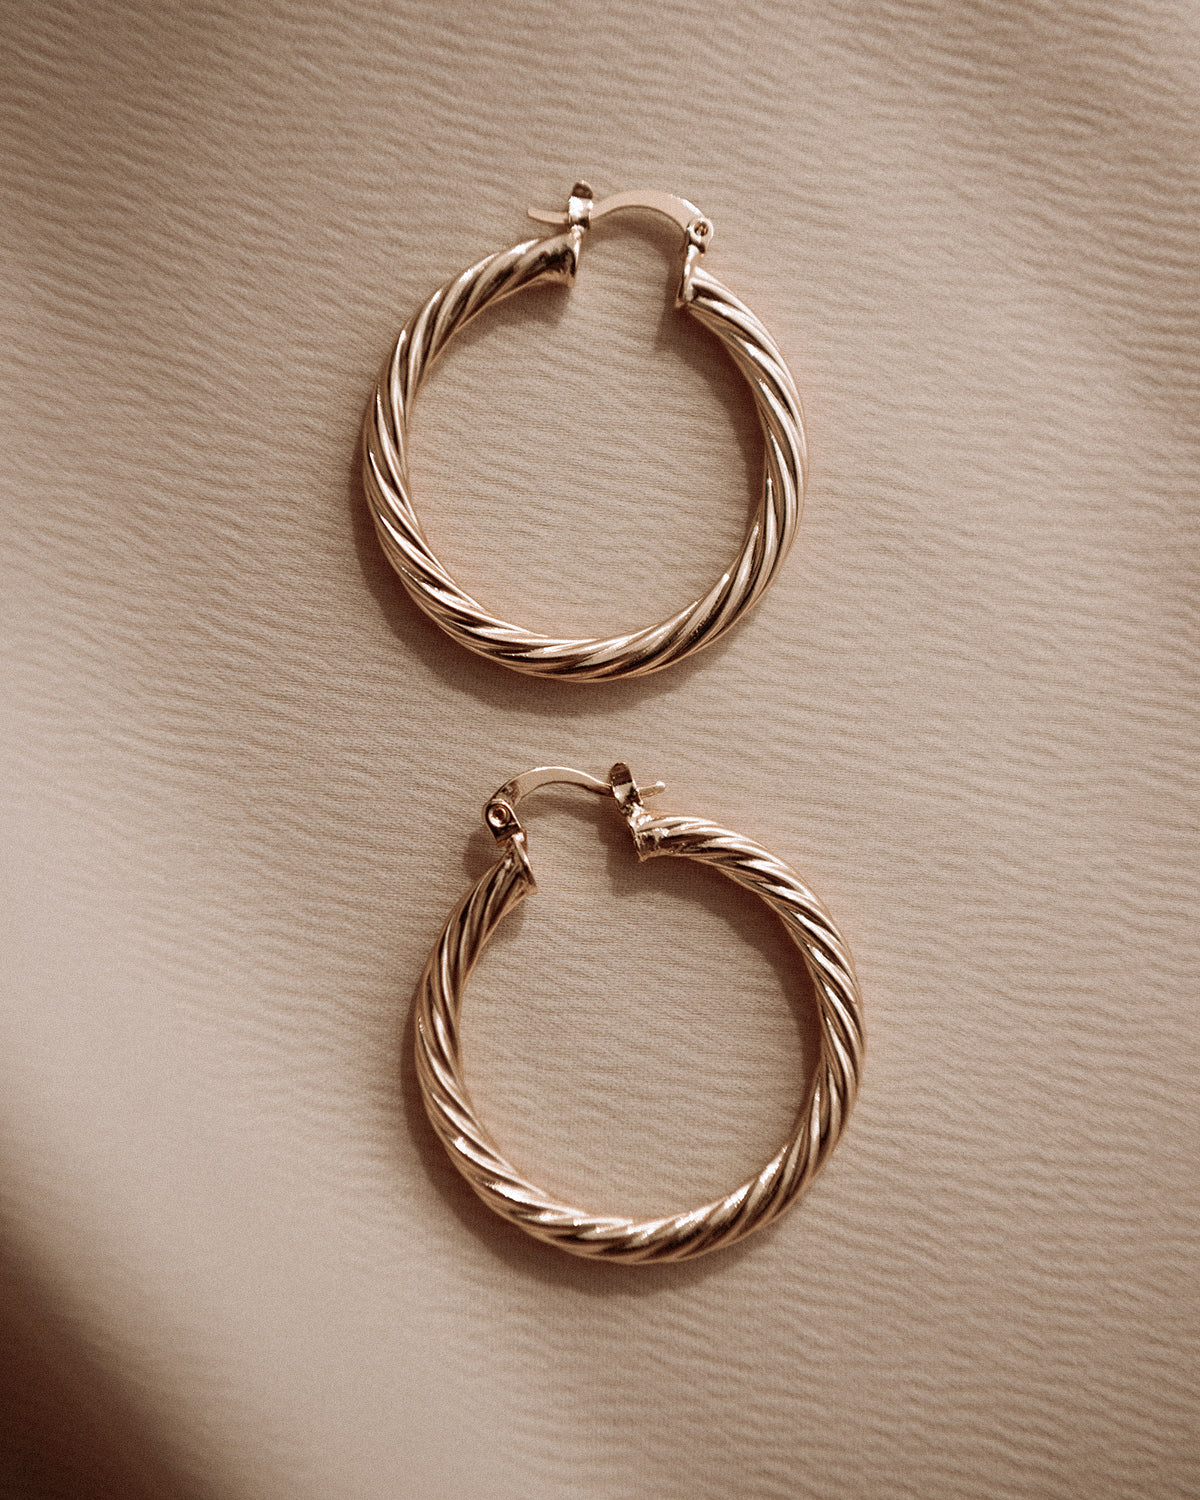 Image of Etta Twisted Hoop Earrings - Maxi